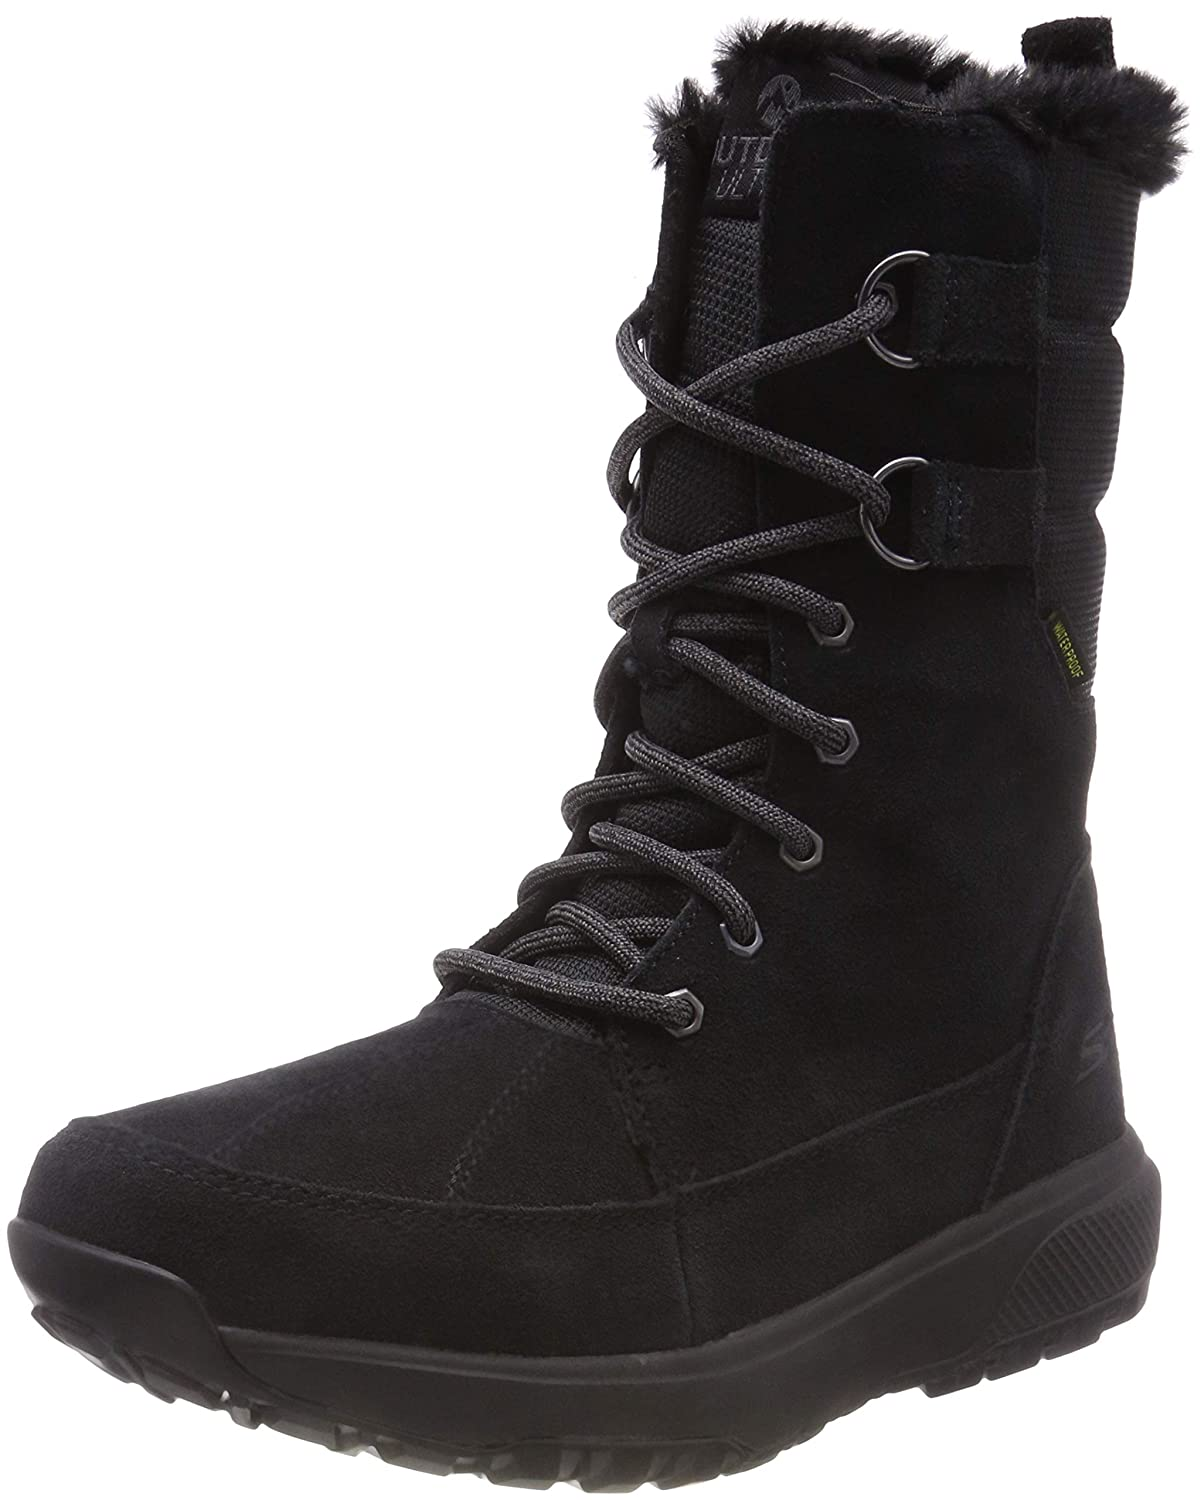 Black Skechers GO Outdoors Ultra Pines Womens Boots